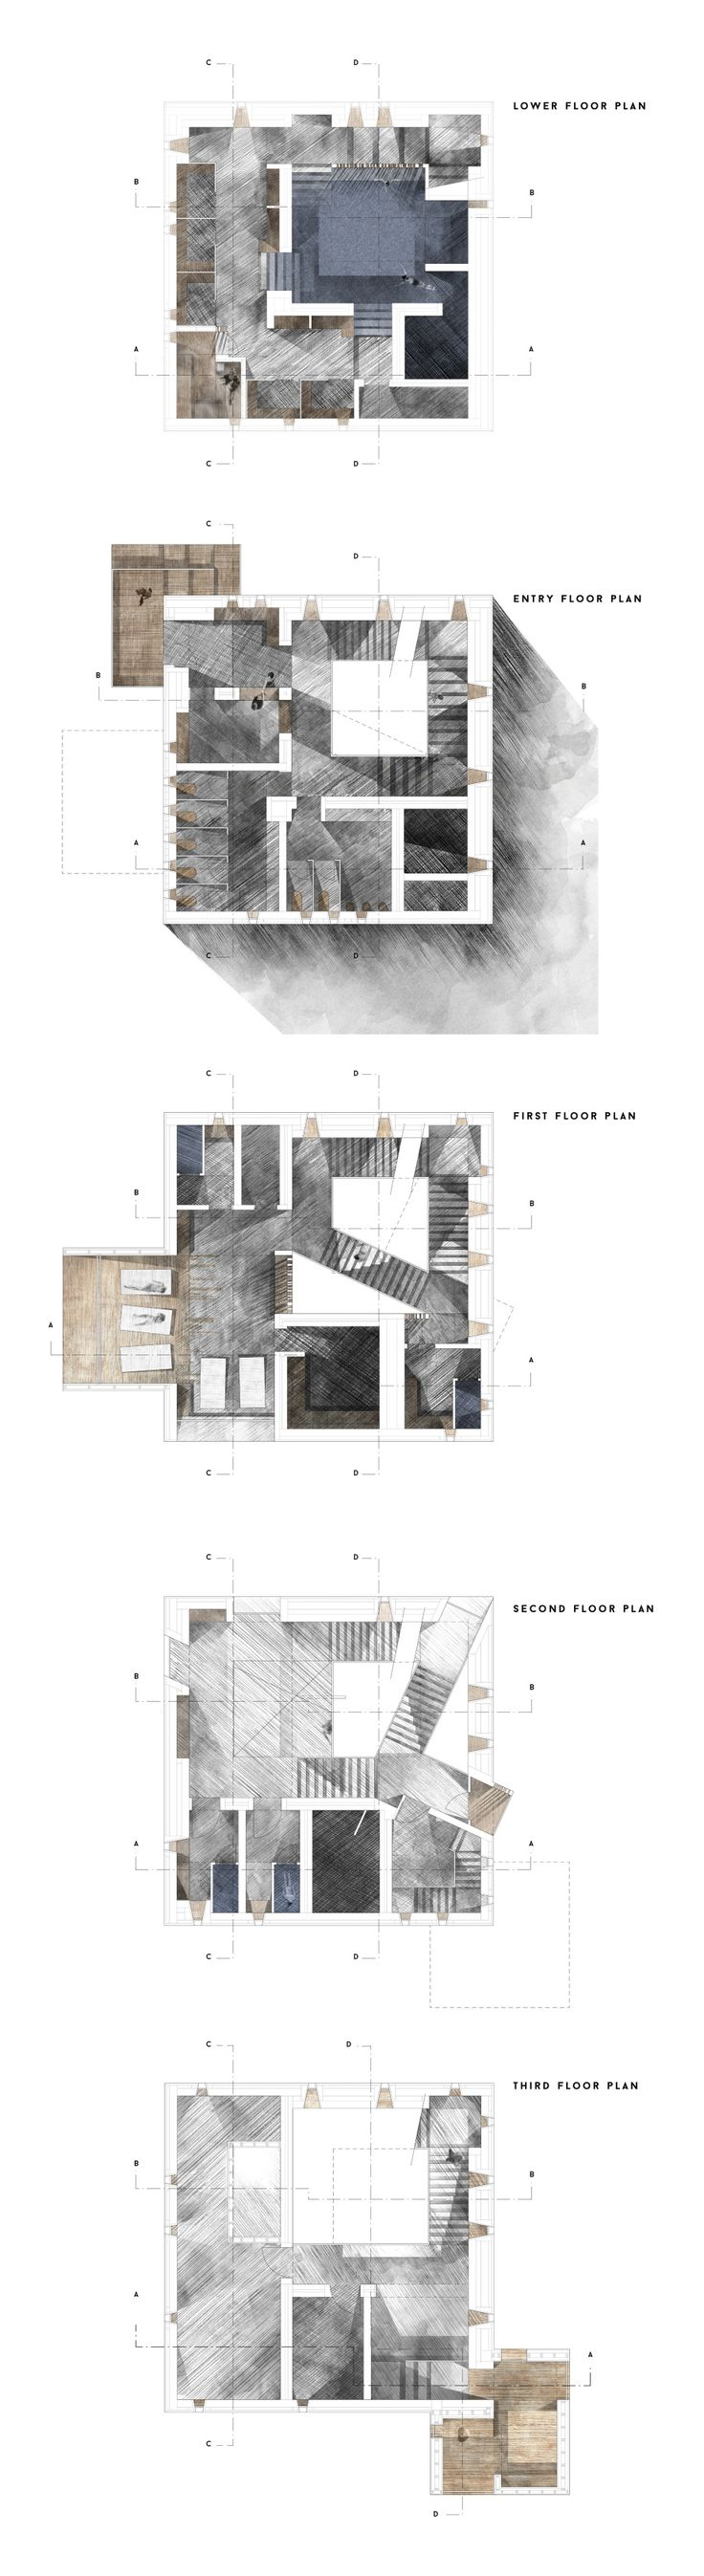 floor plans // Alex Kindlen Final Studio Project #architecture #presentation #drawing #plans